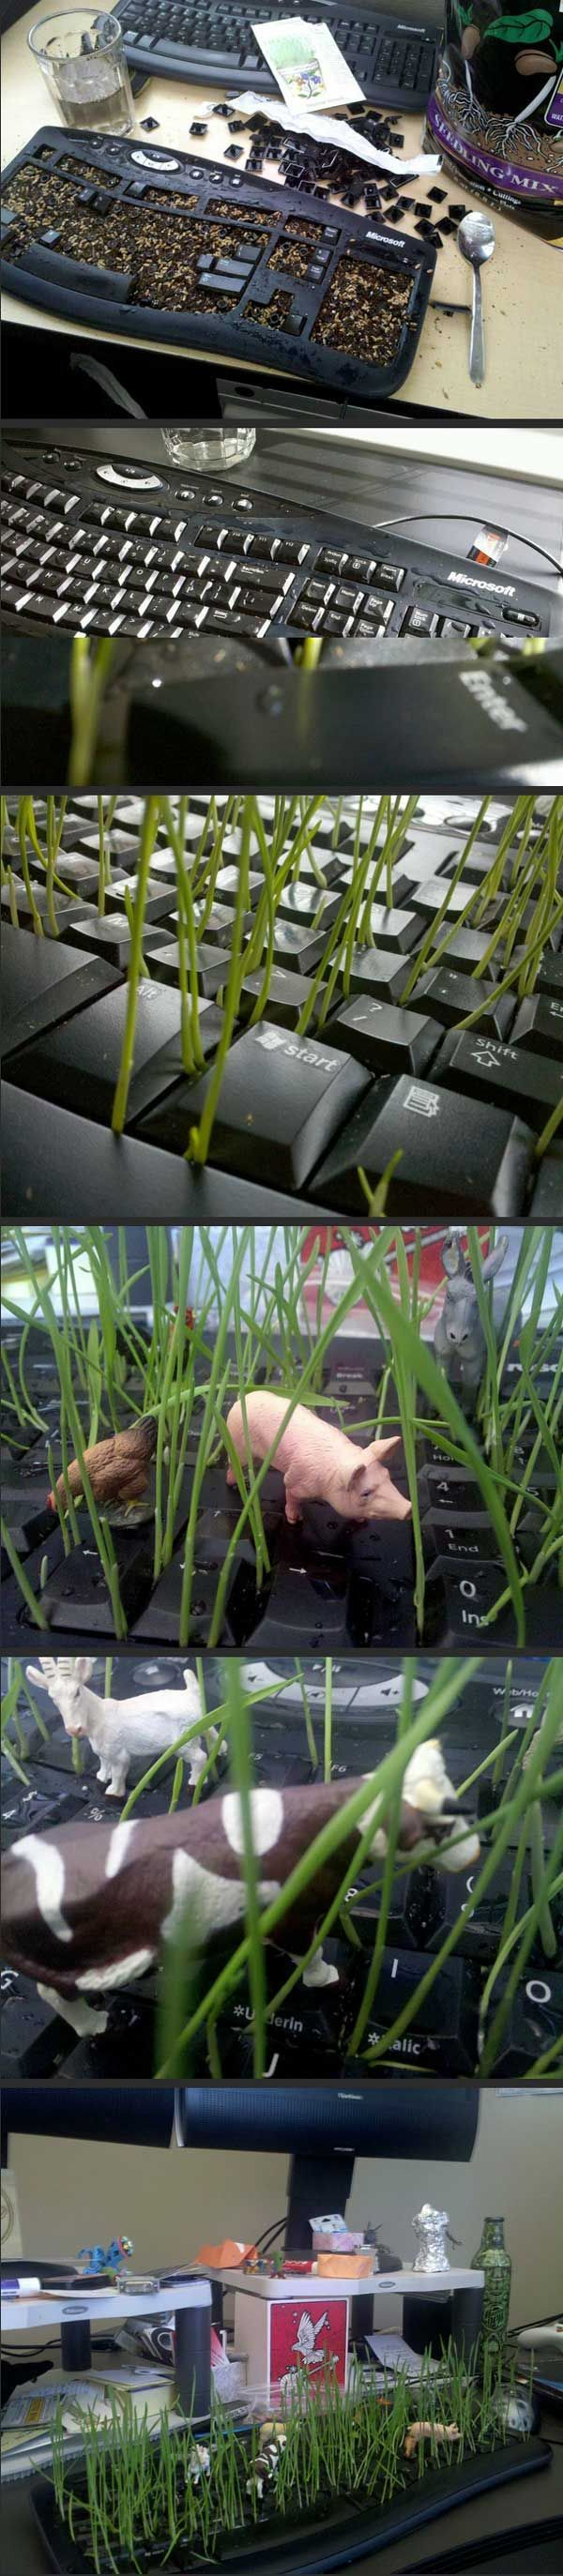 That's hilarious! A fun idea to do as a prank from an old keyboard :-).